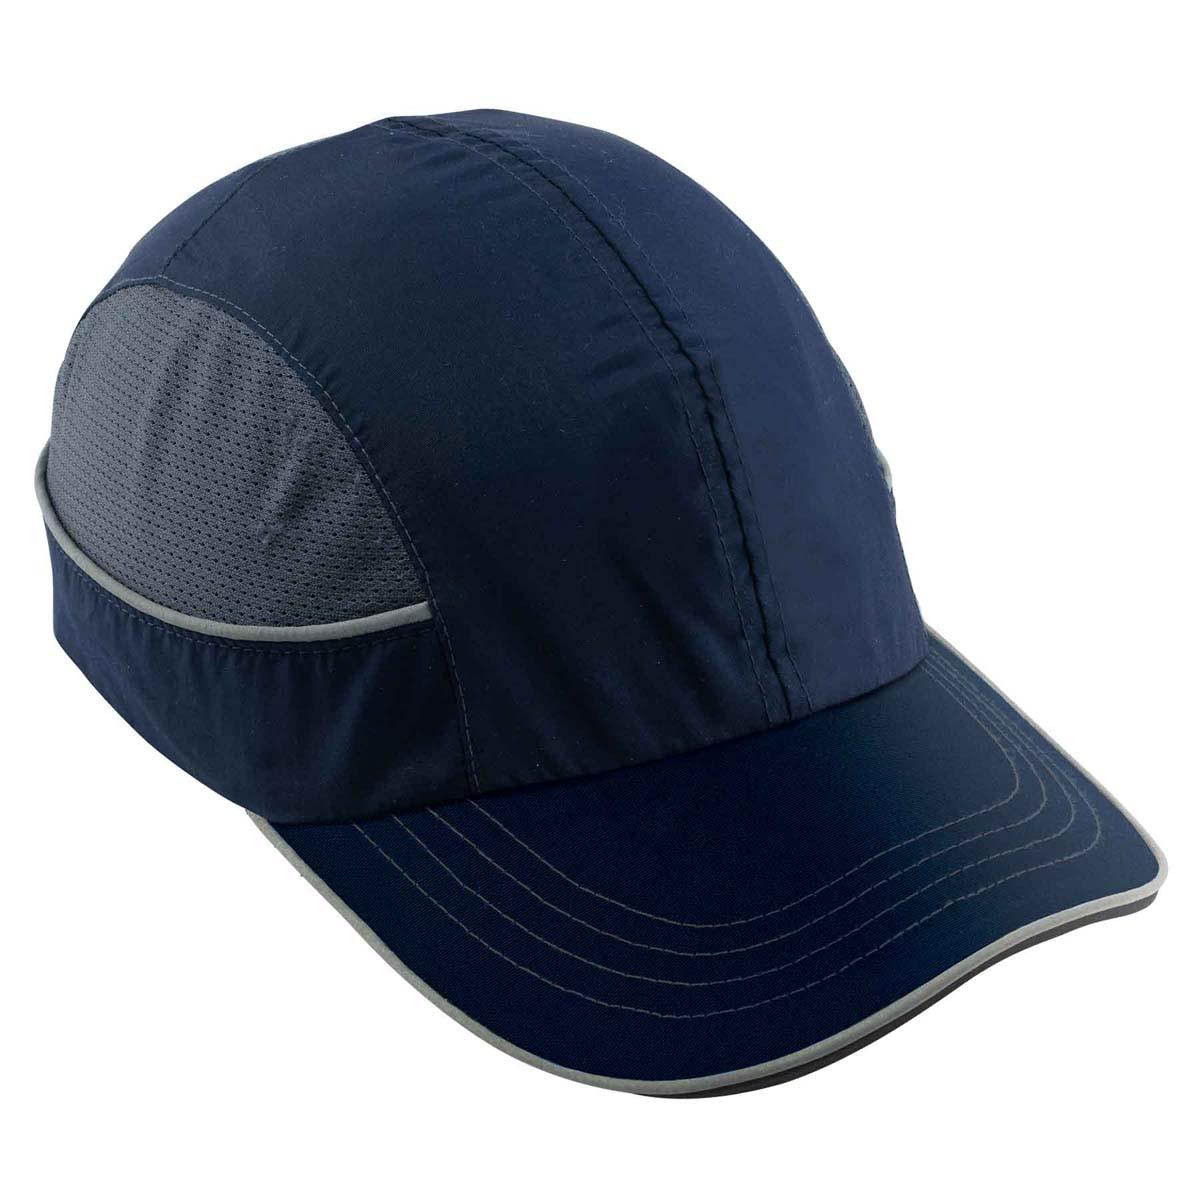 8950 Long Brim Navy Bump Cap